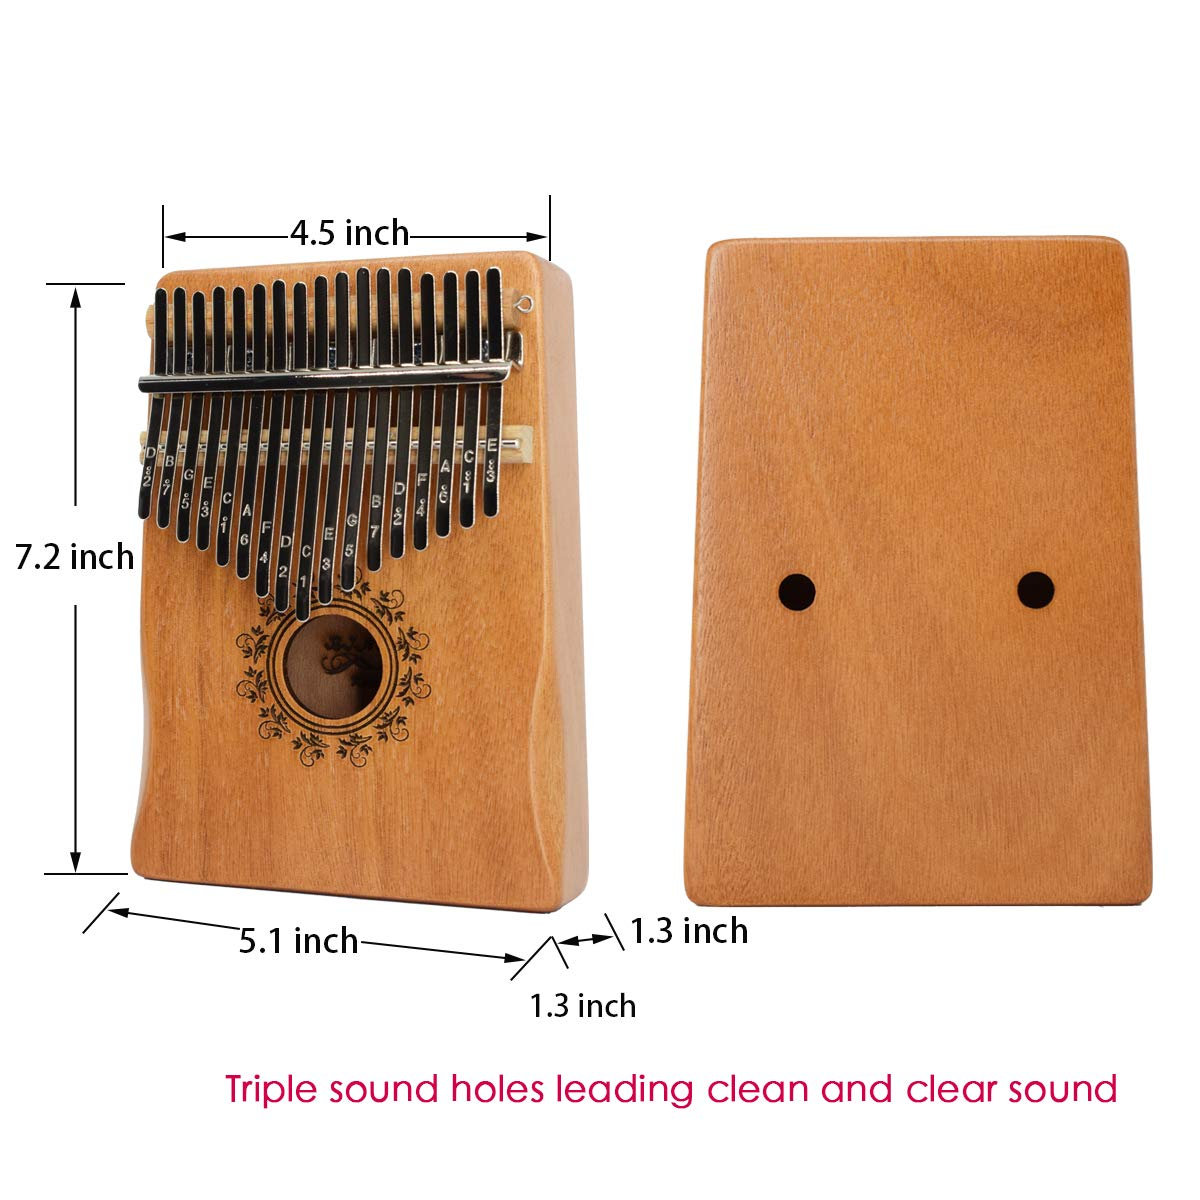 17 Key Kalimba Thumb Piano, Bindor Finger Piano Mbira Kalimba Solid Mahogany Body Portable Easy-to-learn Musical Instrument with Tuning Hammer(Wood Color) by BinDor (Image #3)